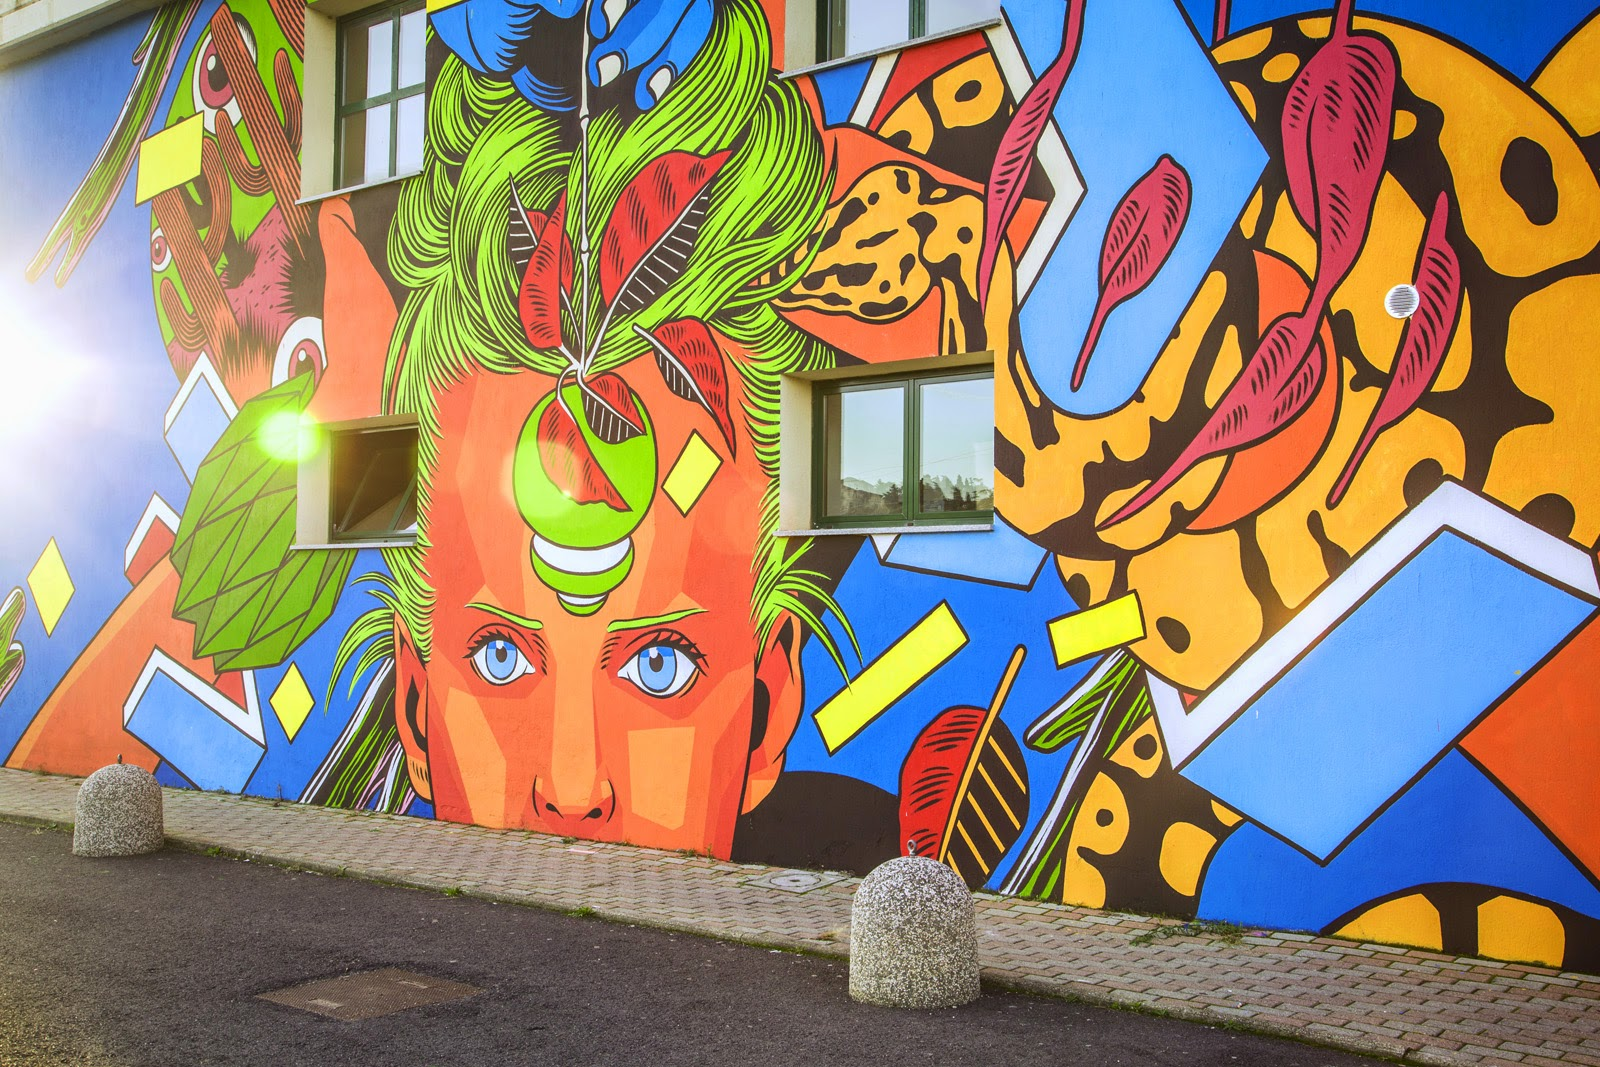 After Gaeta and Terracina, Bicicleta Sem Freio stopped by the city of Pinerolo in Italy to work on a tropical new piece.